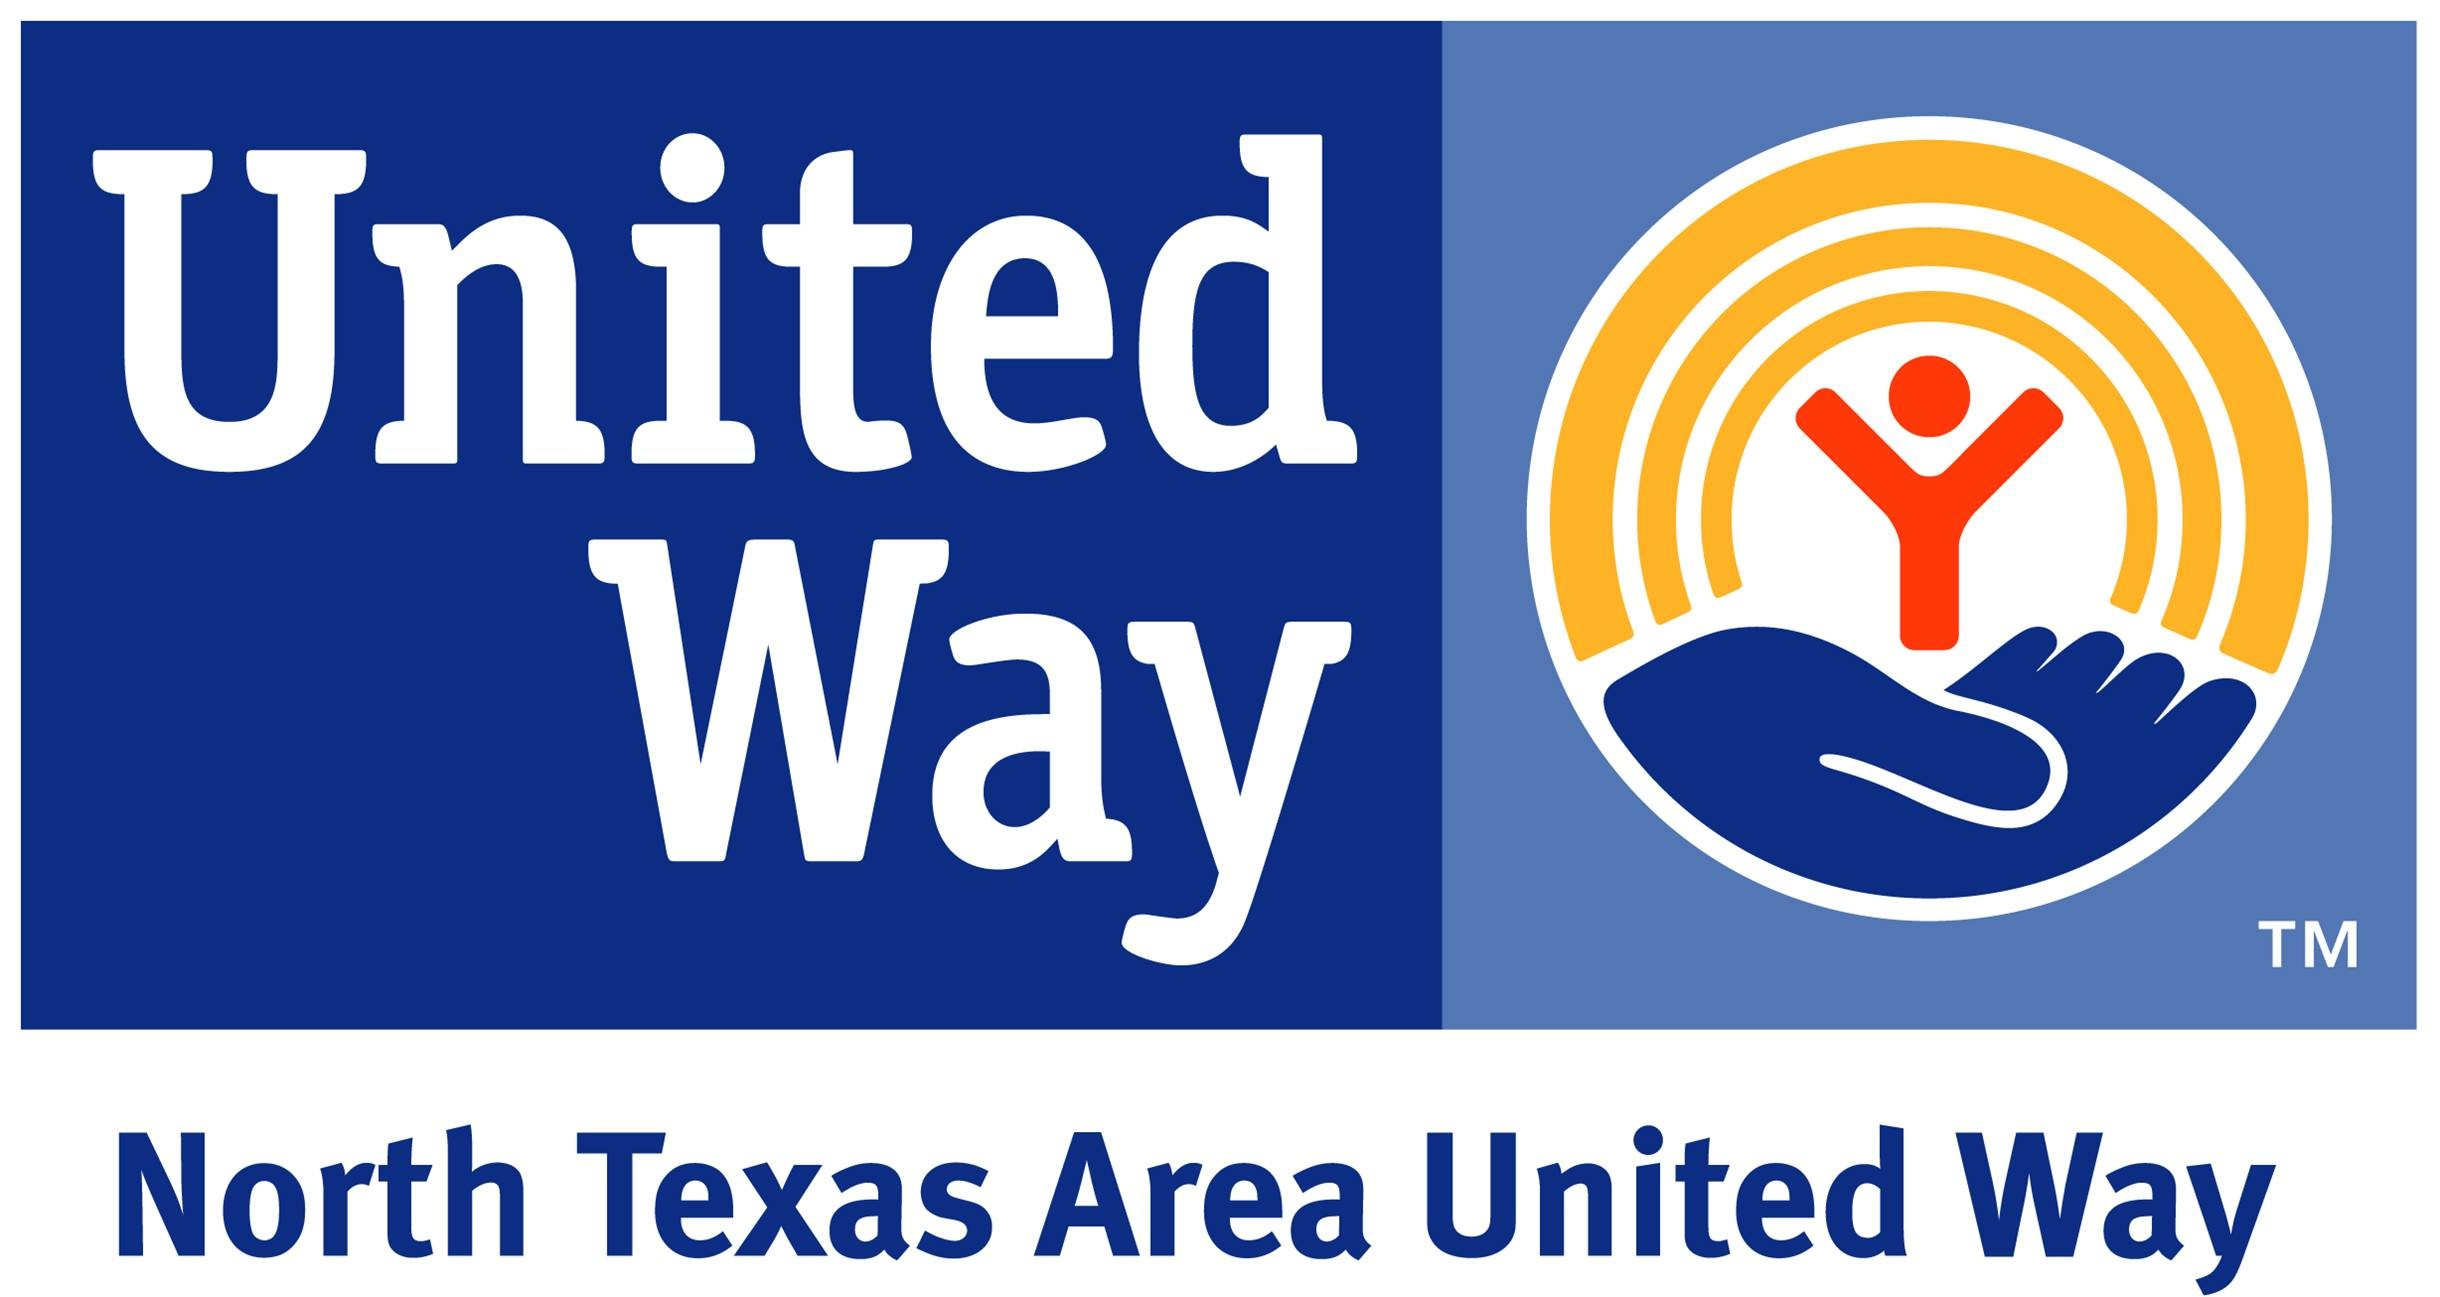 North Texas Area United Way